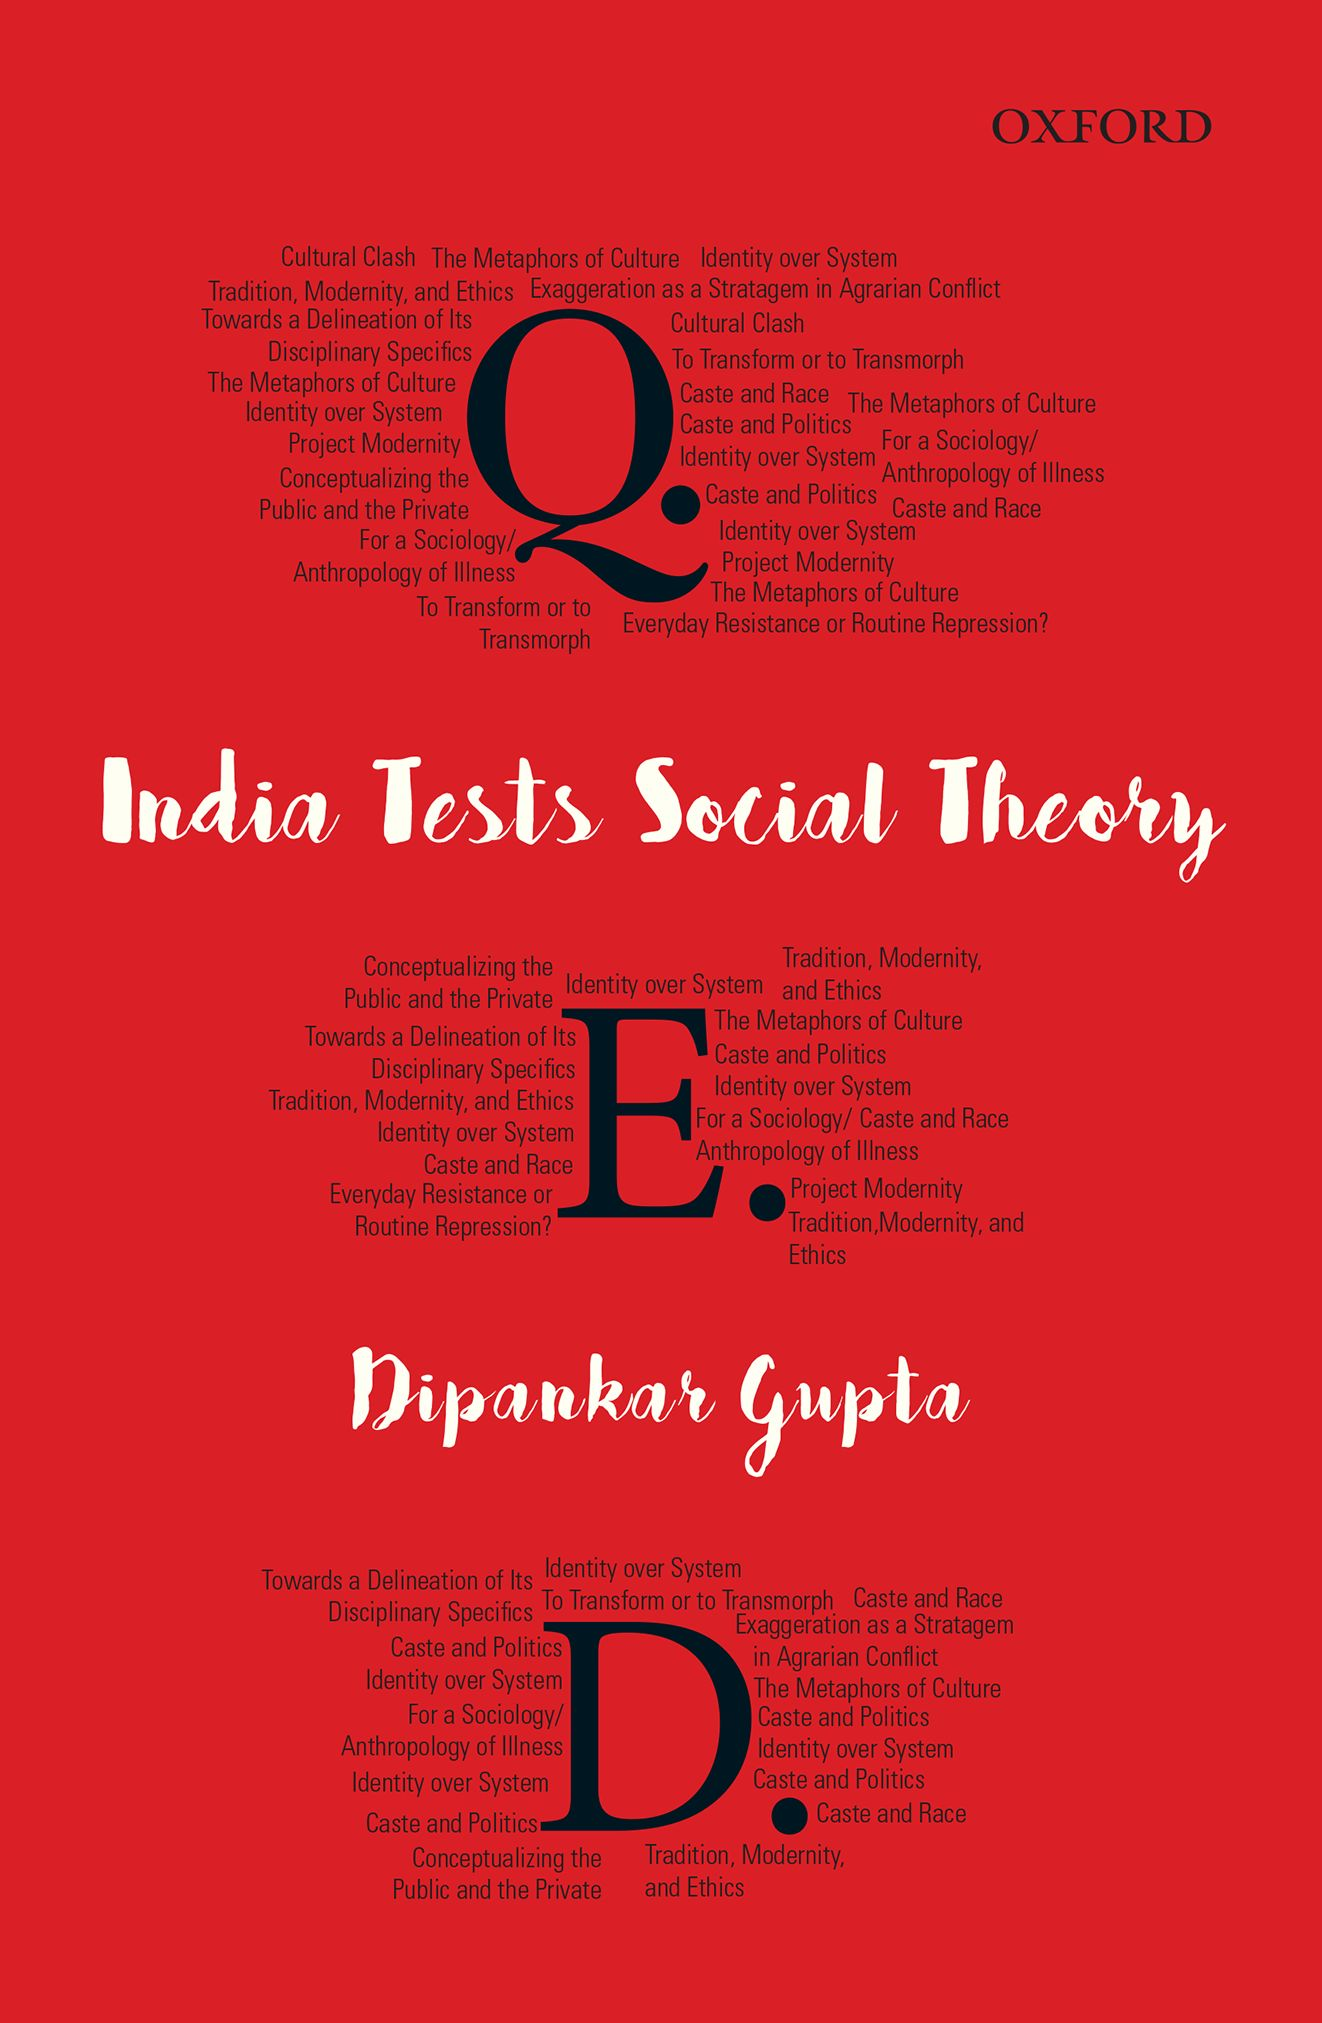 Q.E.D. (Quod Erat Demonstrandum) - India Tests Social Theory